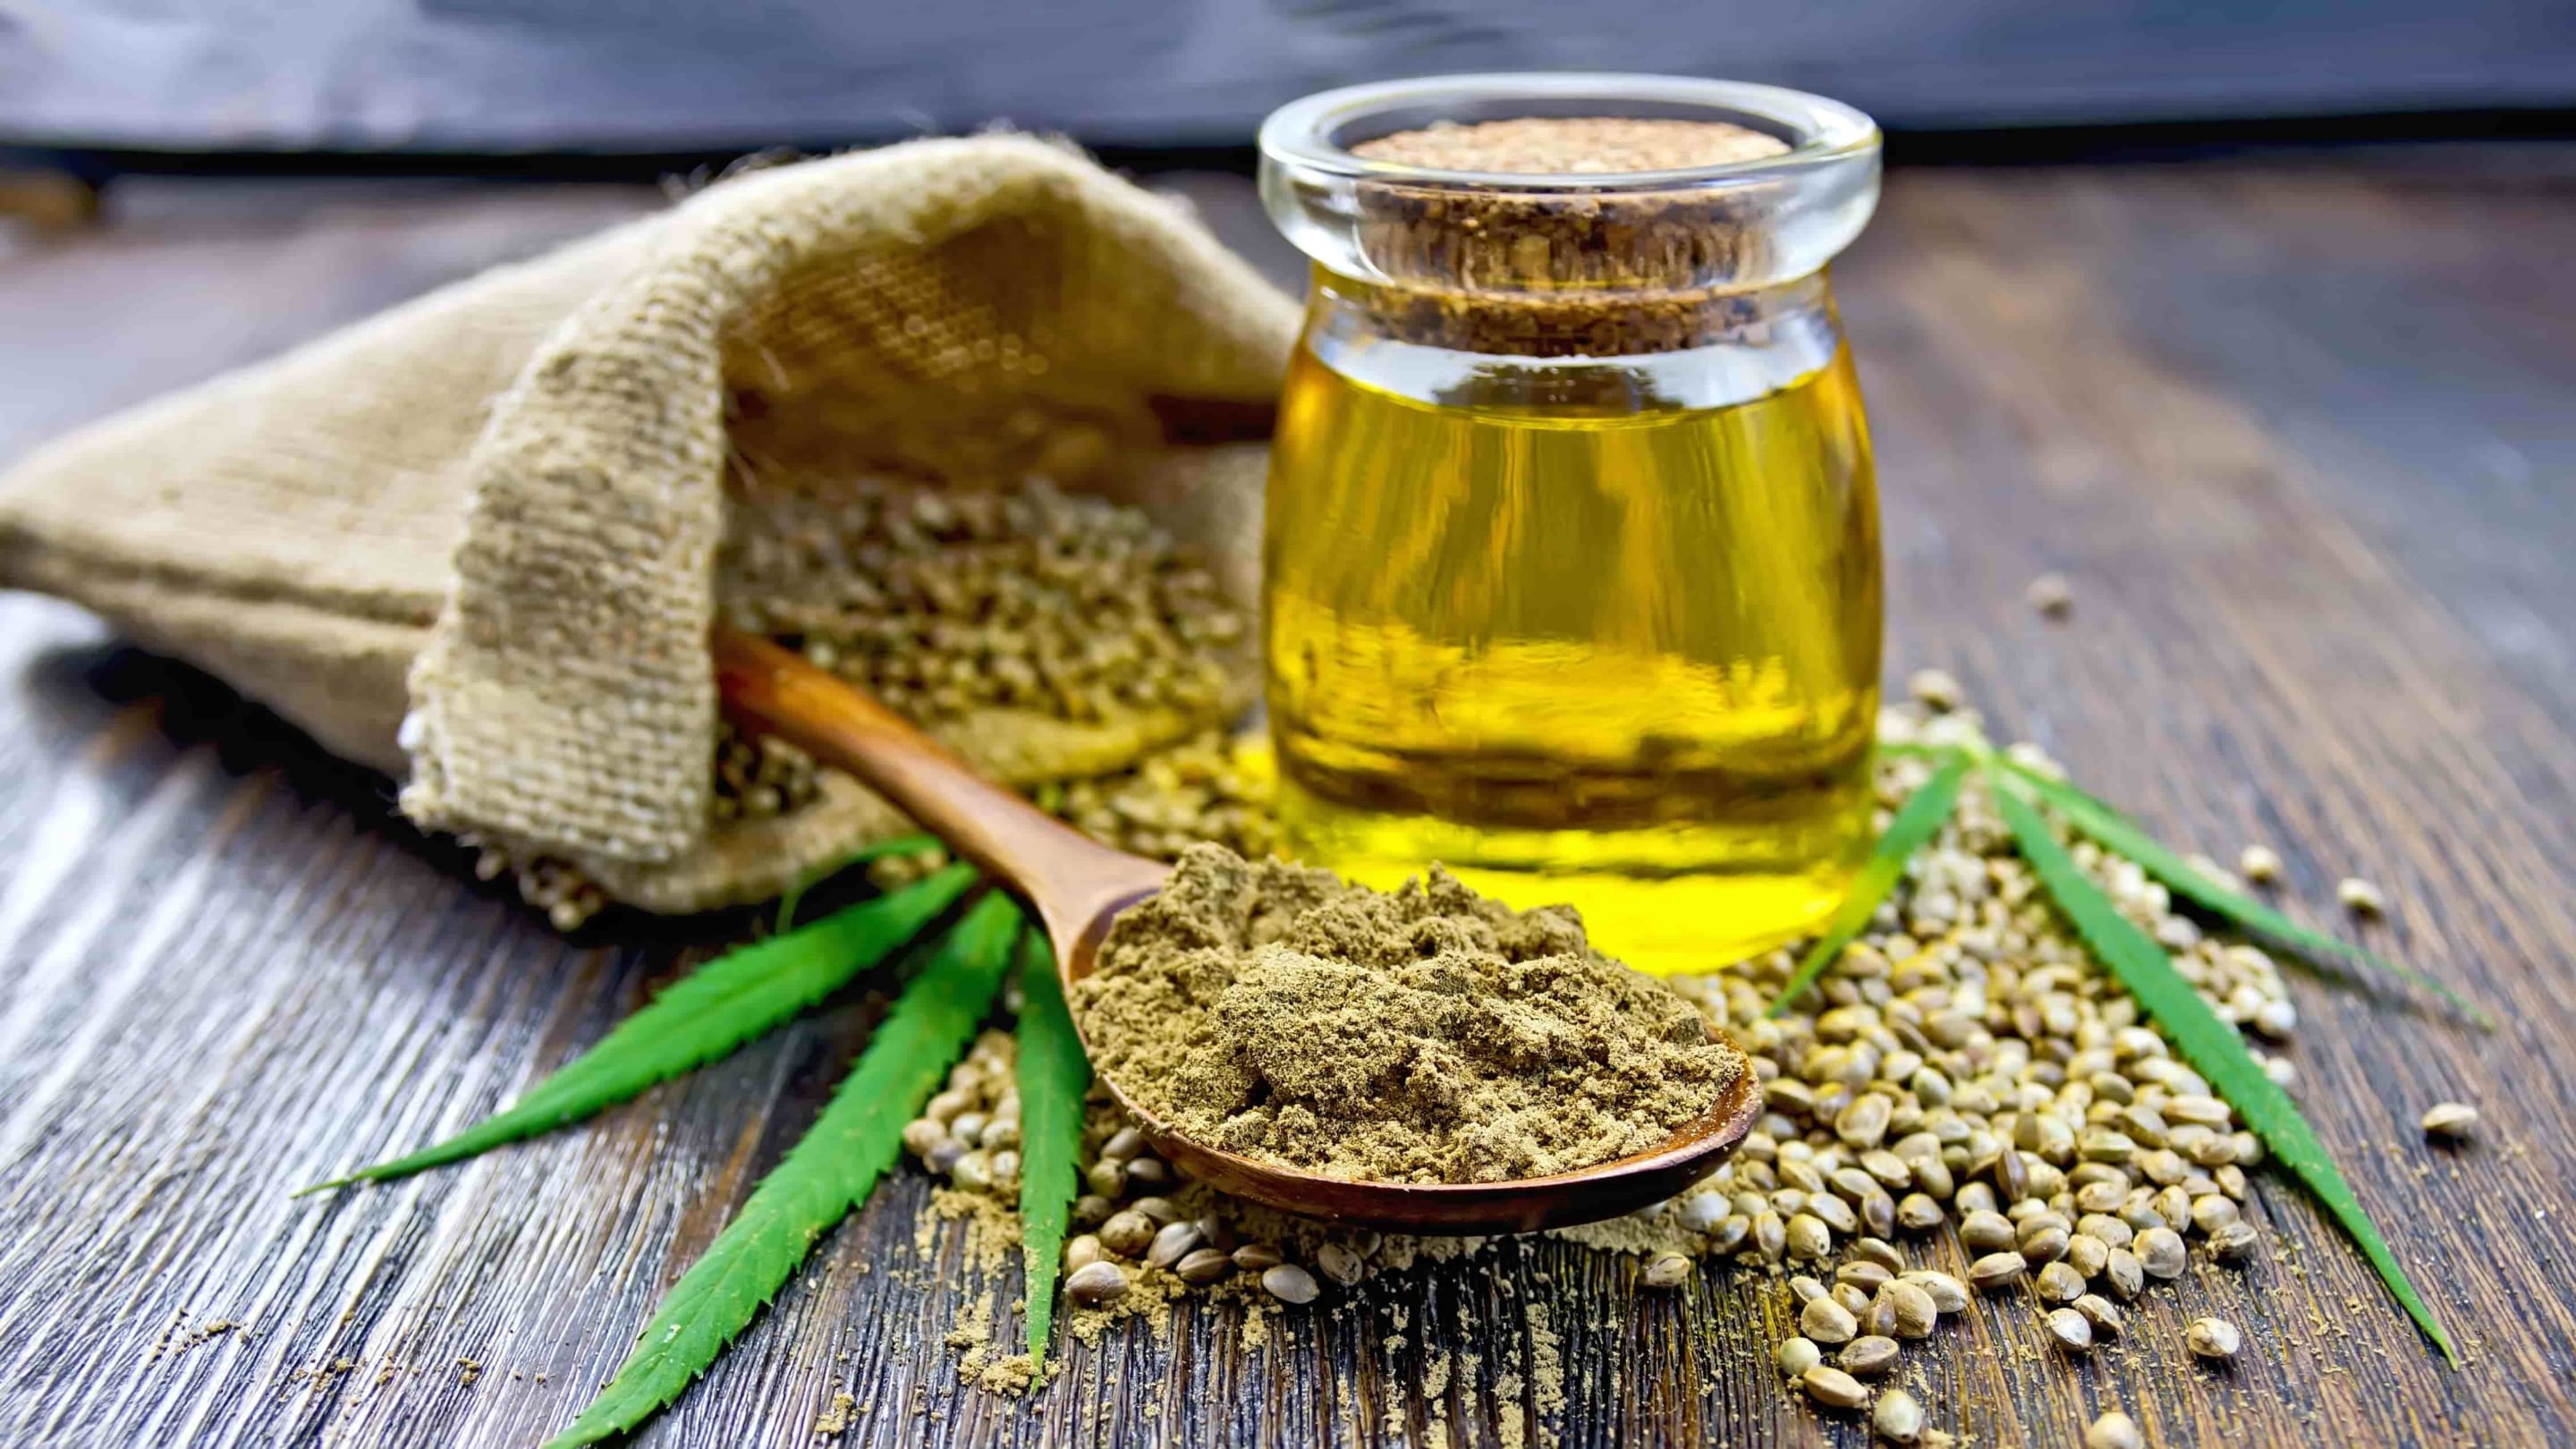 Hemp Oil for Pain: Does It Actually Work? Here's What We Found